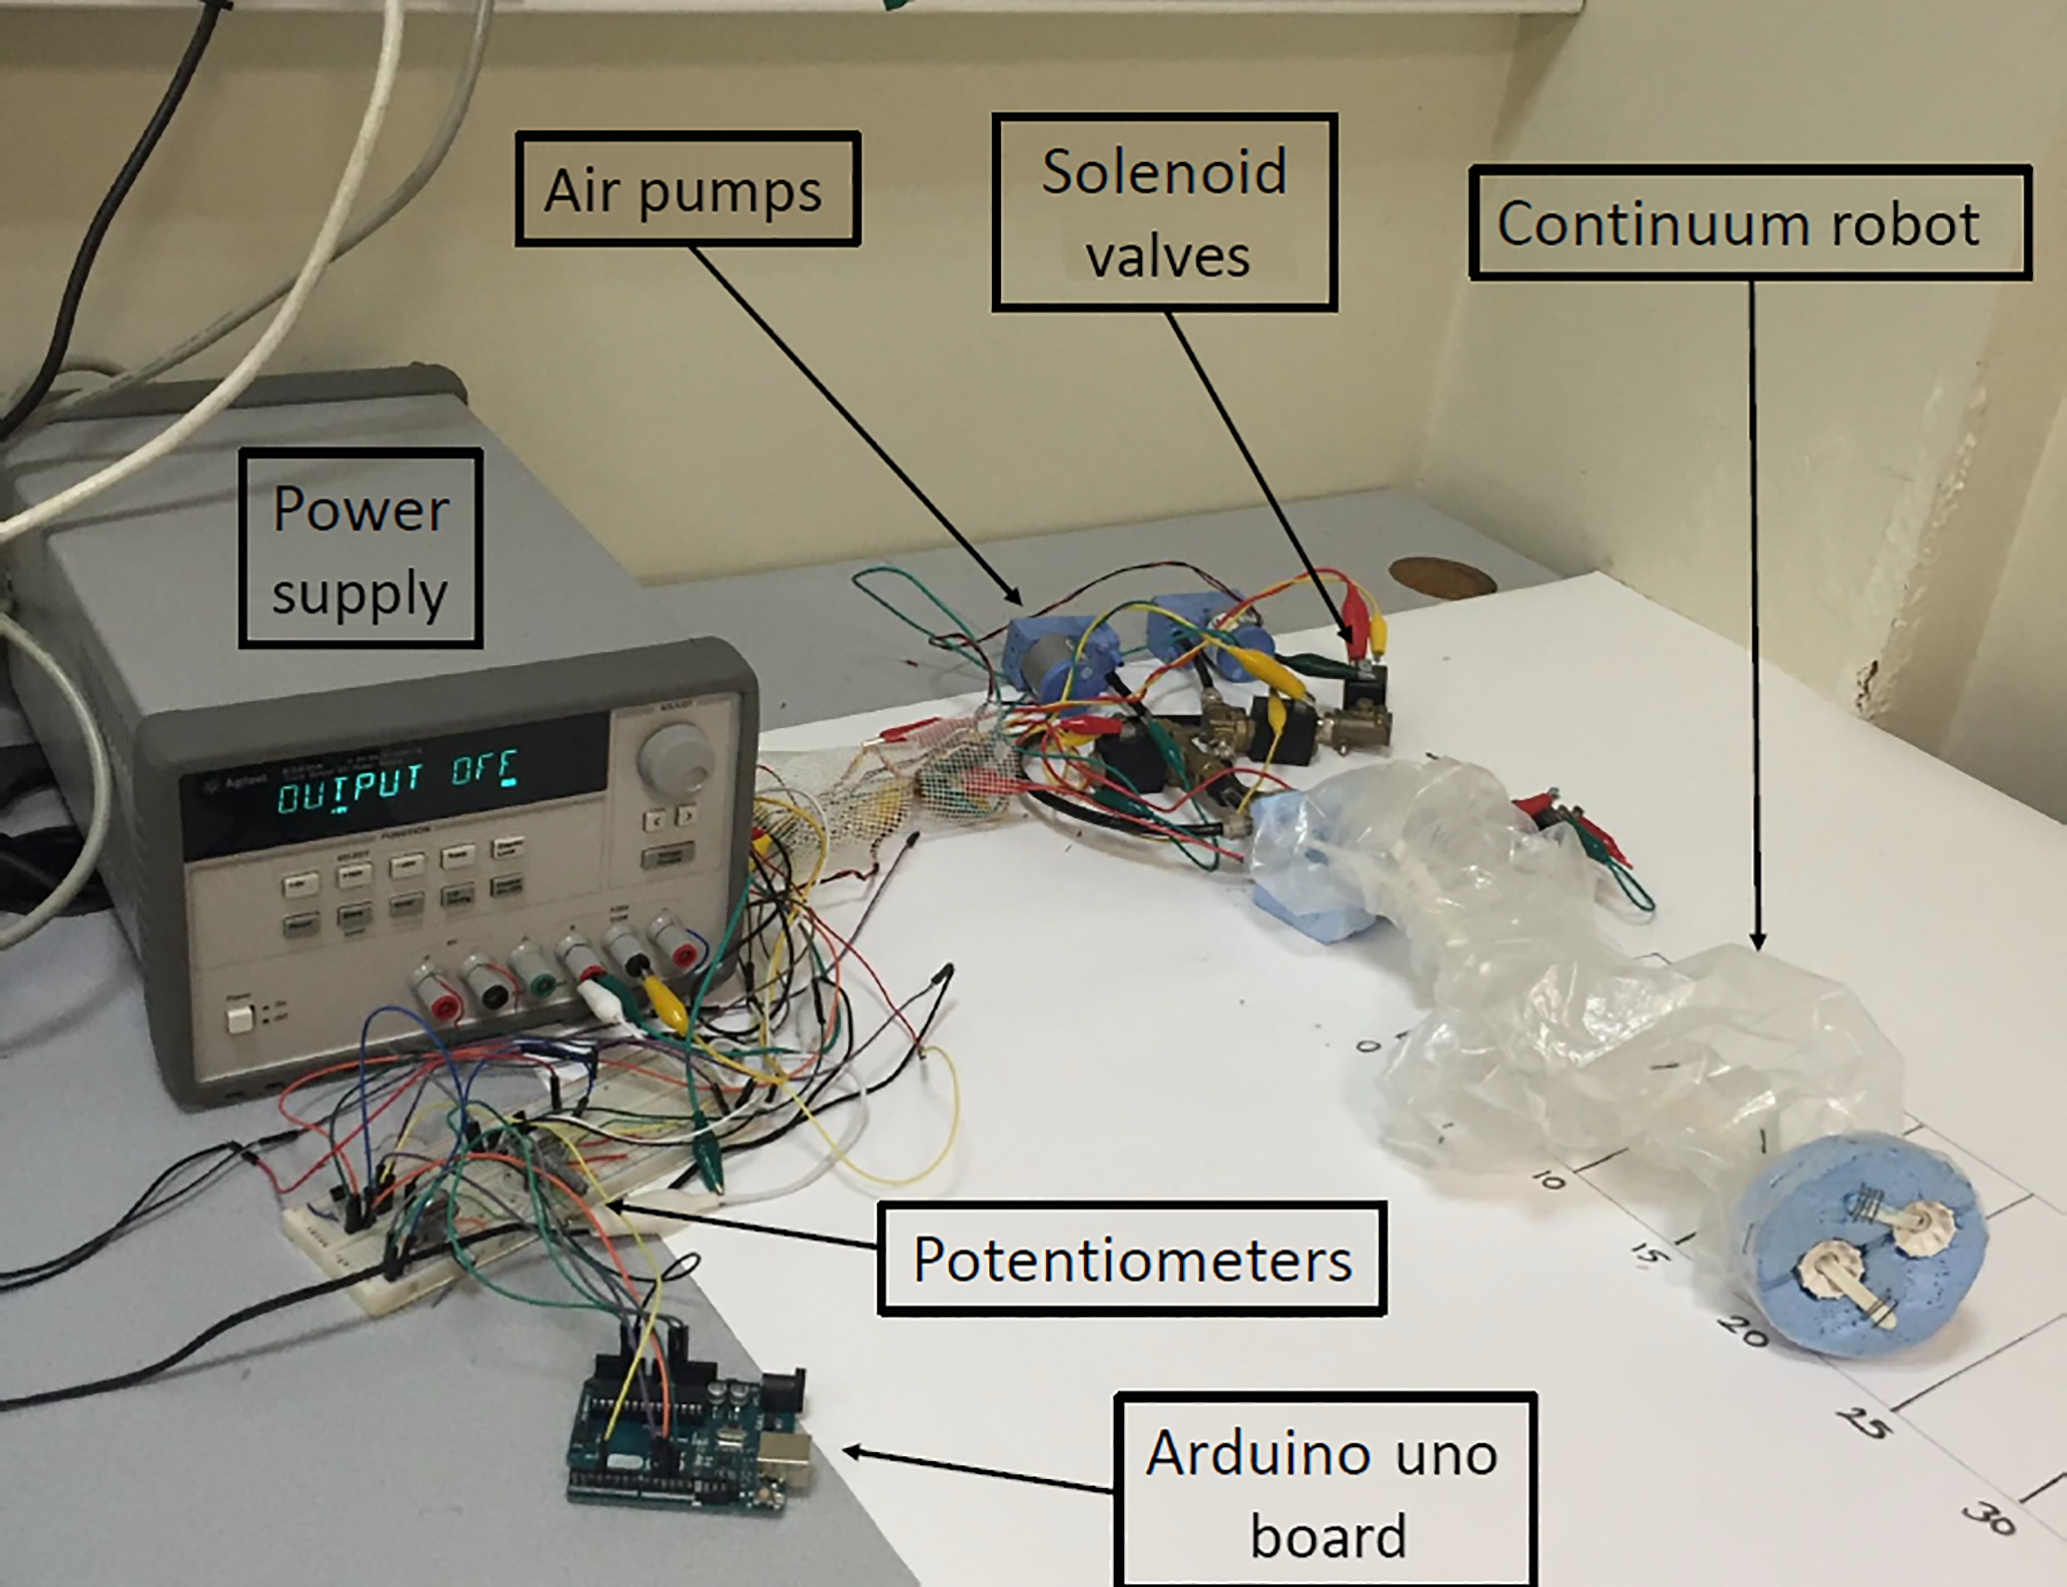 MS - Design and evaluation of a continuum robot with extendable balloons